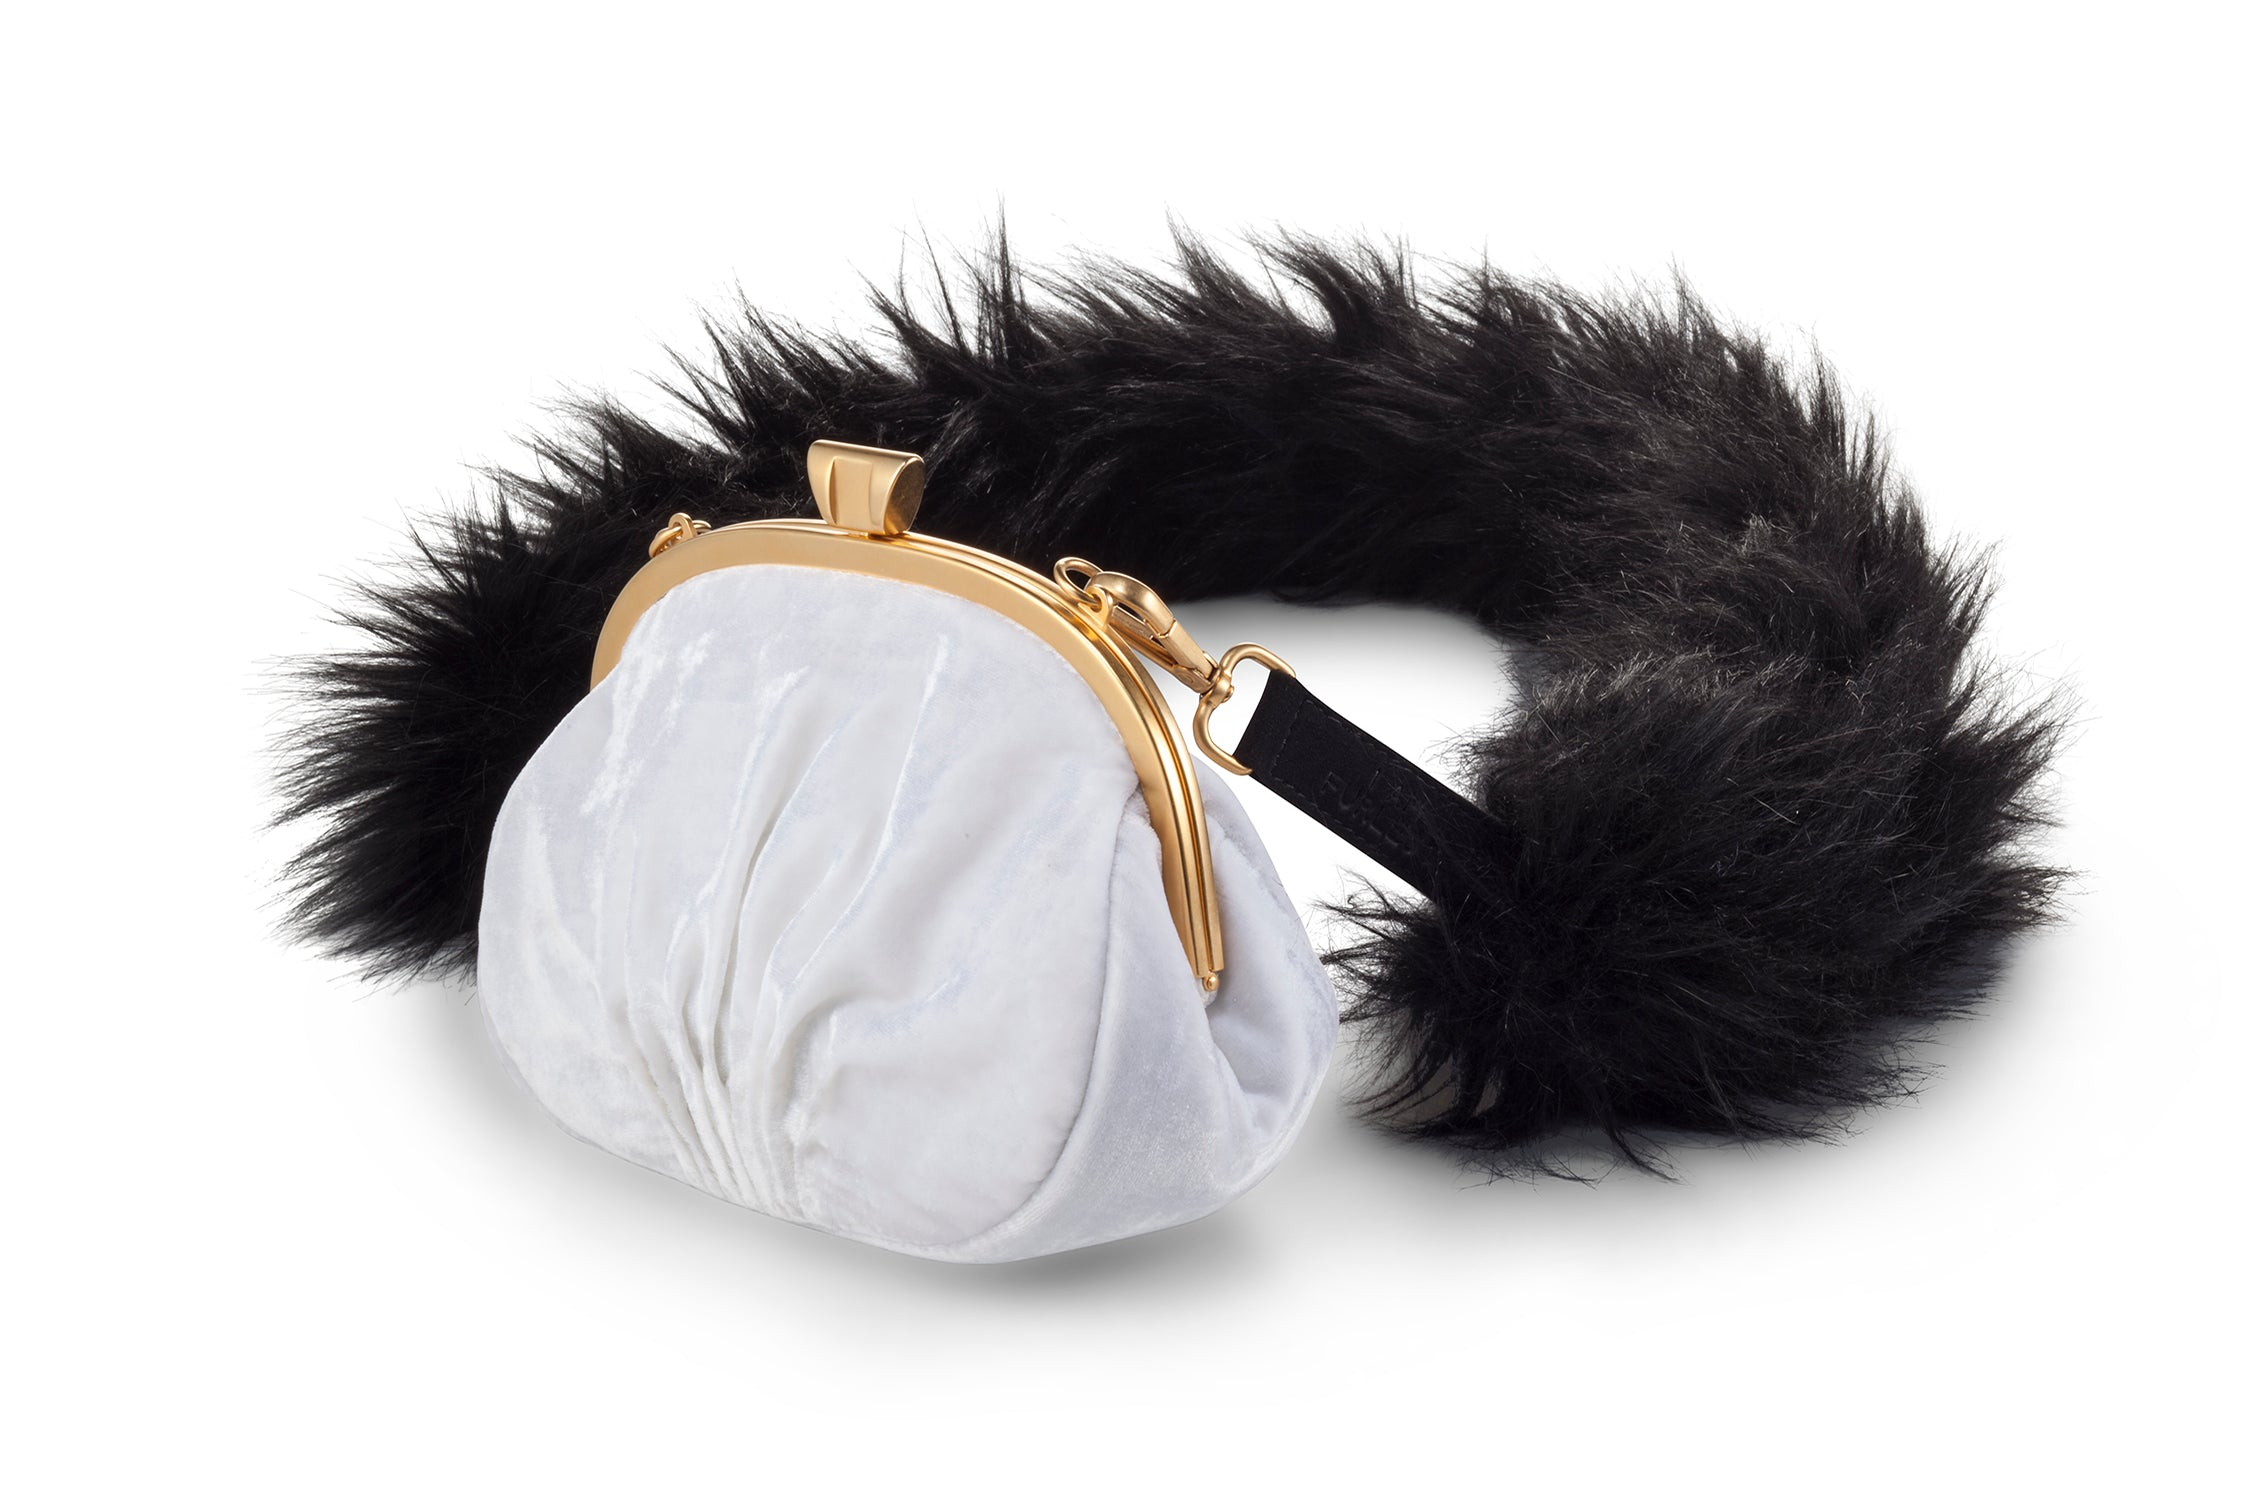 A Packshot Of Marei1998's Forget Me Not Velvet Purse In White Color. Made From Lustrous Velvet And Topped With Gold Plated Brass Clasp For Smooth Closure. The Puffy Silhouette Is Accentuated By A Lush Faux Fur Strap In Contrasting Black Color, Creating A Contemporary Vintage Look. Side View.